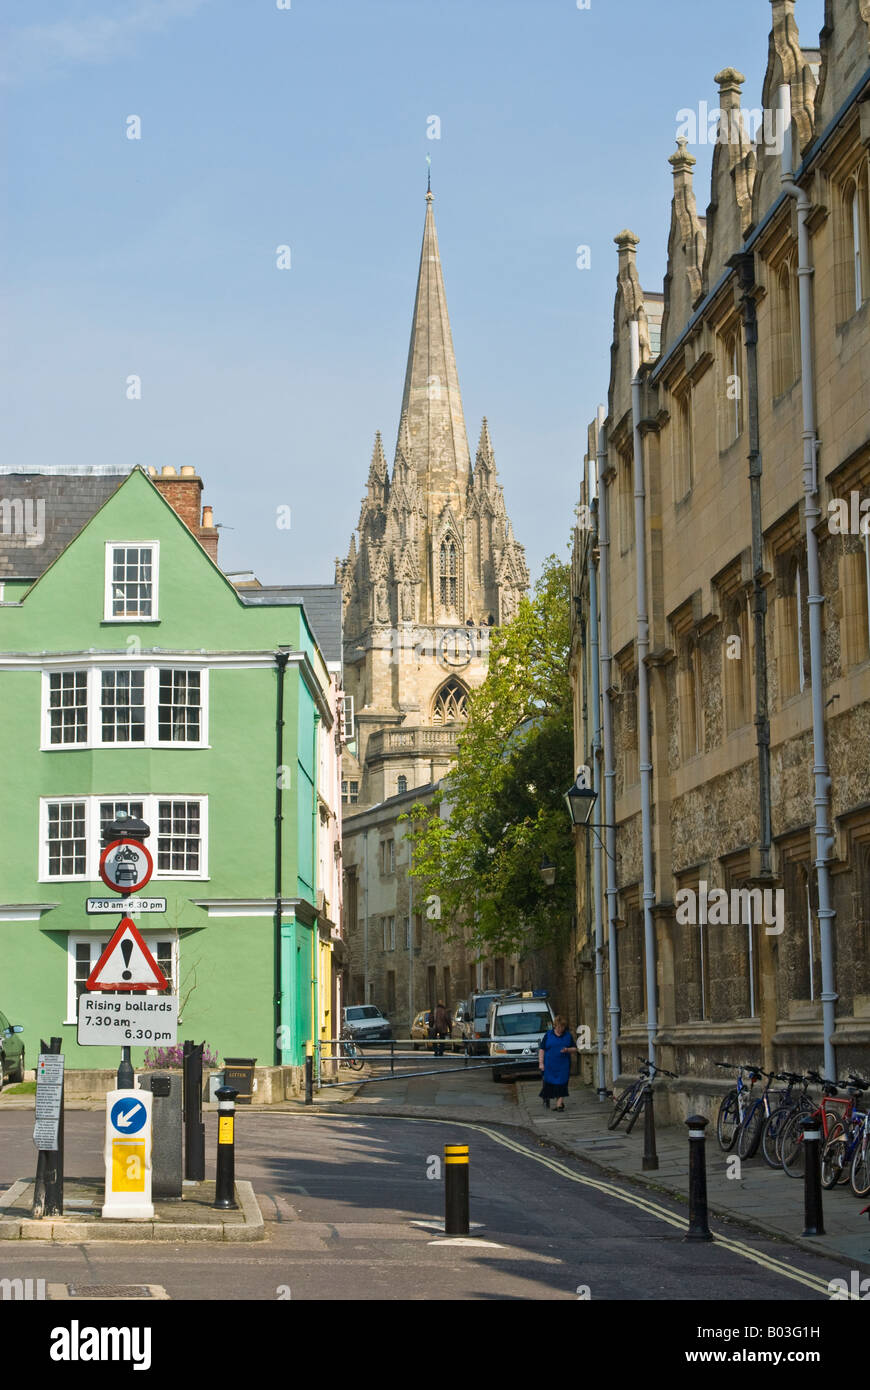 Oxford, England. Looking along Oriel Street from Oriel Square towards the University Church of St Mary the Virgin - Stock Image